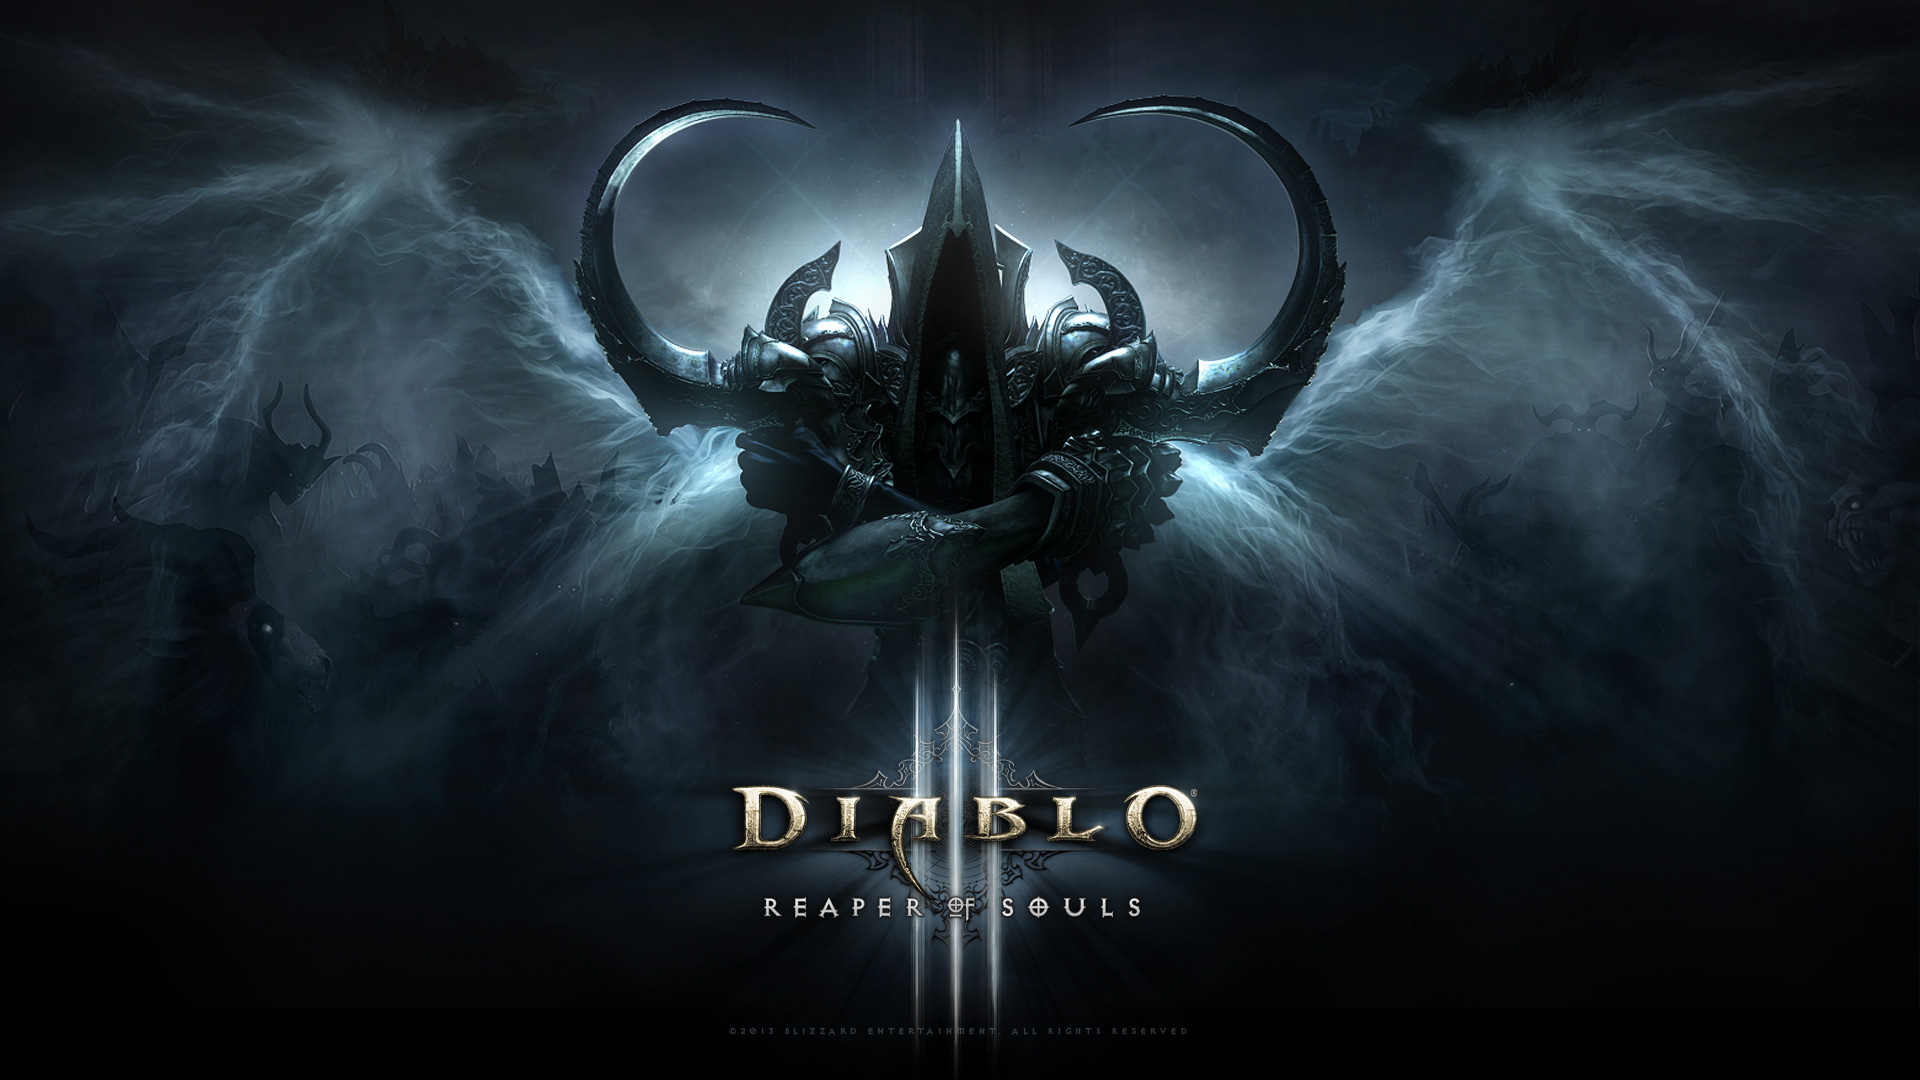 Diablo 3 Will Support Remote Play on PS4